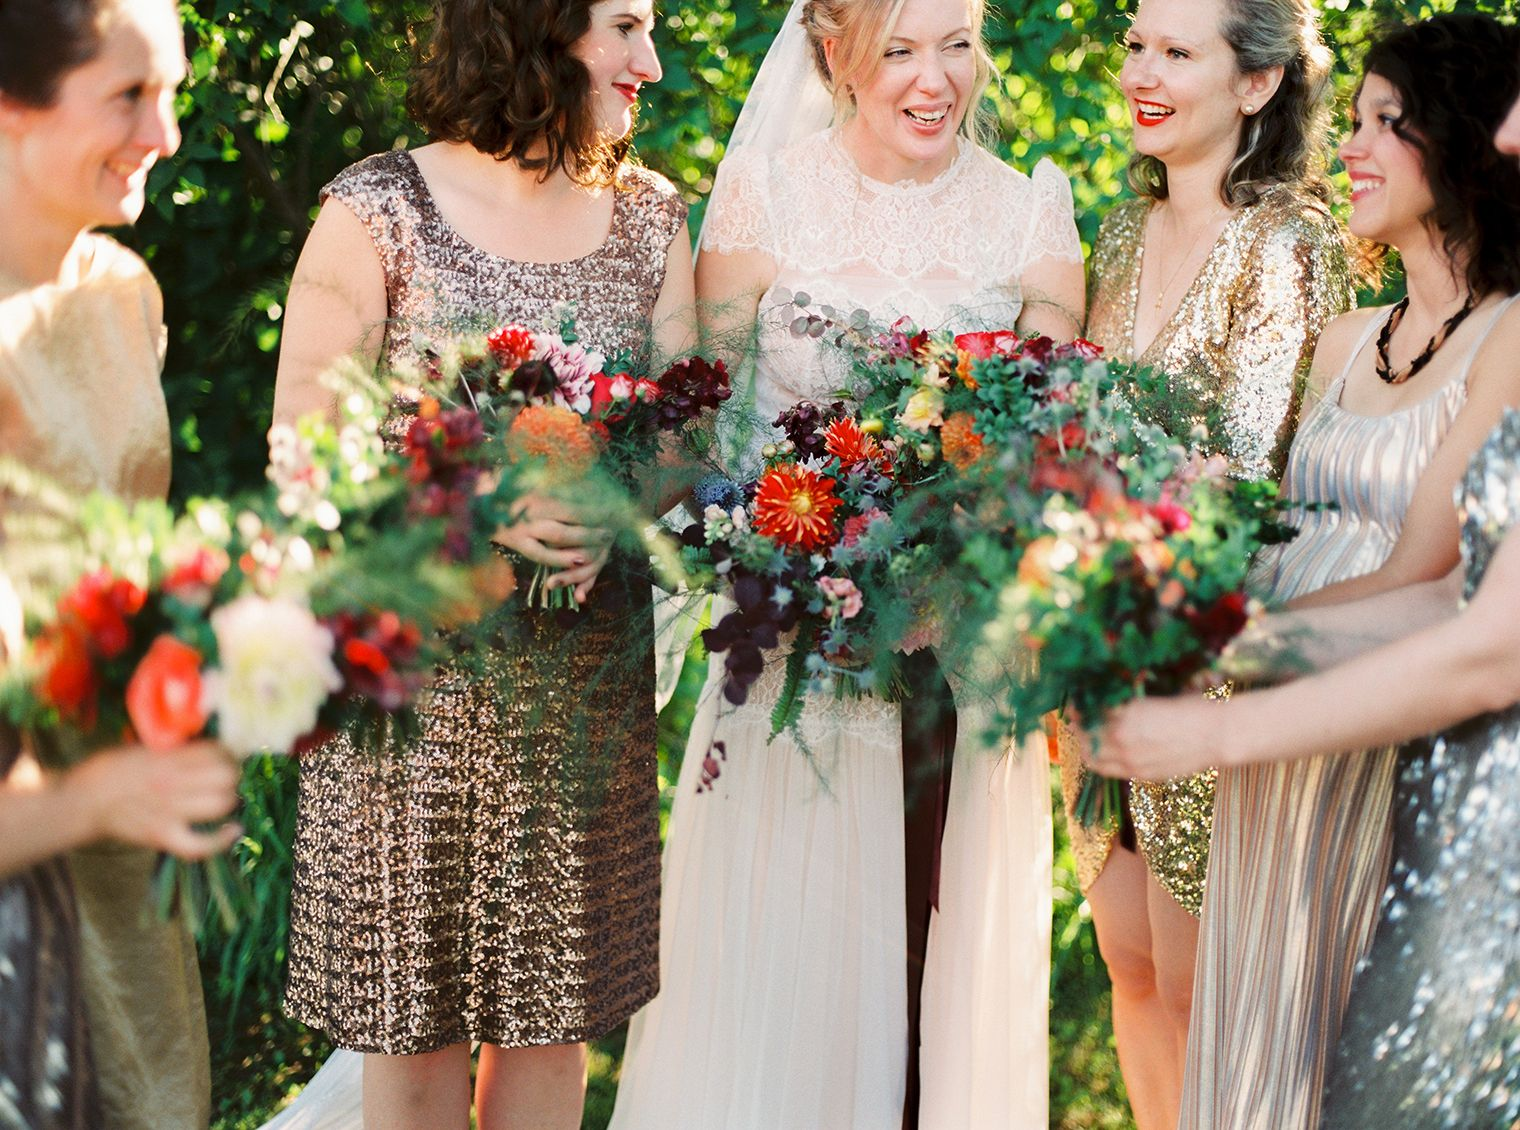 Beautiful wedding bouquets with spring flowers love the boho floral